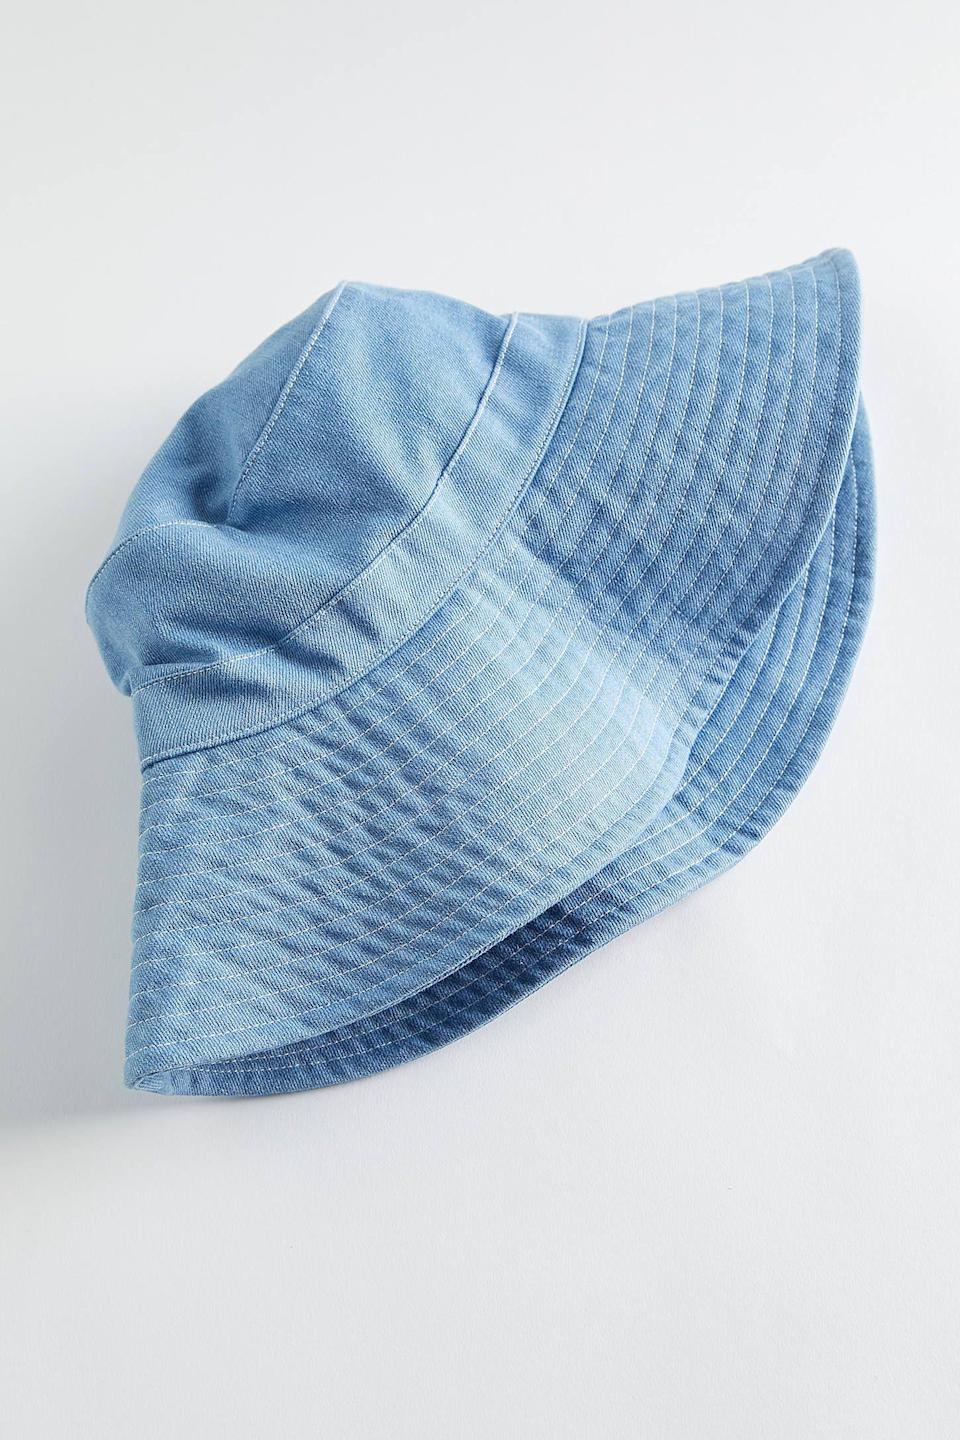 """<p><strong>Urban Outfitters</strong></p><p>urbanoutfitters.com</p><p><strong>$24.00</strong></p><p><a href=""""https://go.redirectingat.com?id=74968X1596630&url=https%3A%2F%2Fwww.urbanoutfitters.com%2Fshop%2Fwide-brim-denim-bucket-hat&sref=https%3A%2F%2Fwww.womenshealthmag.com%2Flife%2Fg33503014%2Fsecret-santa-gifts%2F"""" rel=""""nofollow noopener"""" target=""""_blank"""" data-ylk=""""slk:Shop Now"""" class=""""link rapid-noclick-resp"""">Shop Now</a></p><p>Say what you want about bucket hats, but they are very *in* right now. If you've got a fashion-forward friend, get them one of these denim-fabric toppers this year. </p>"""